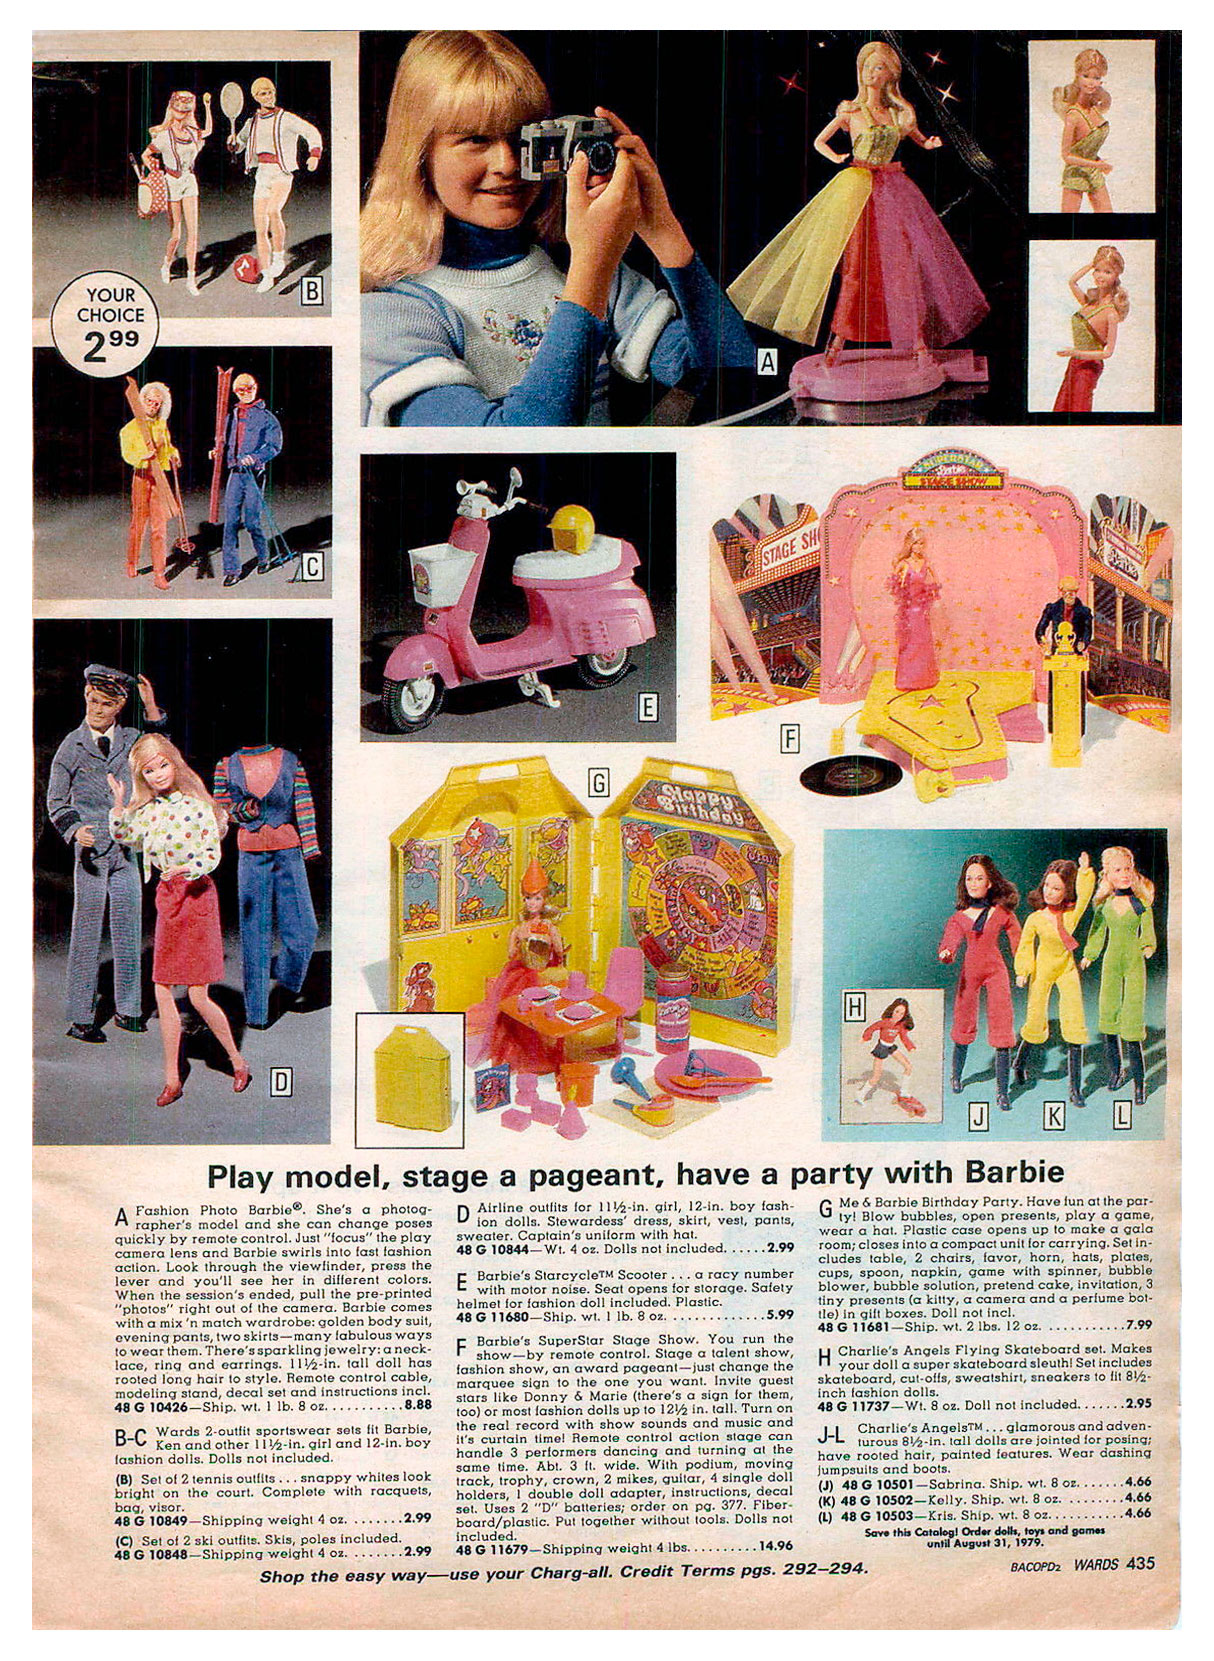 From 1978 Montgomery Ward Christmas catalogue